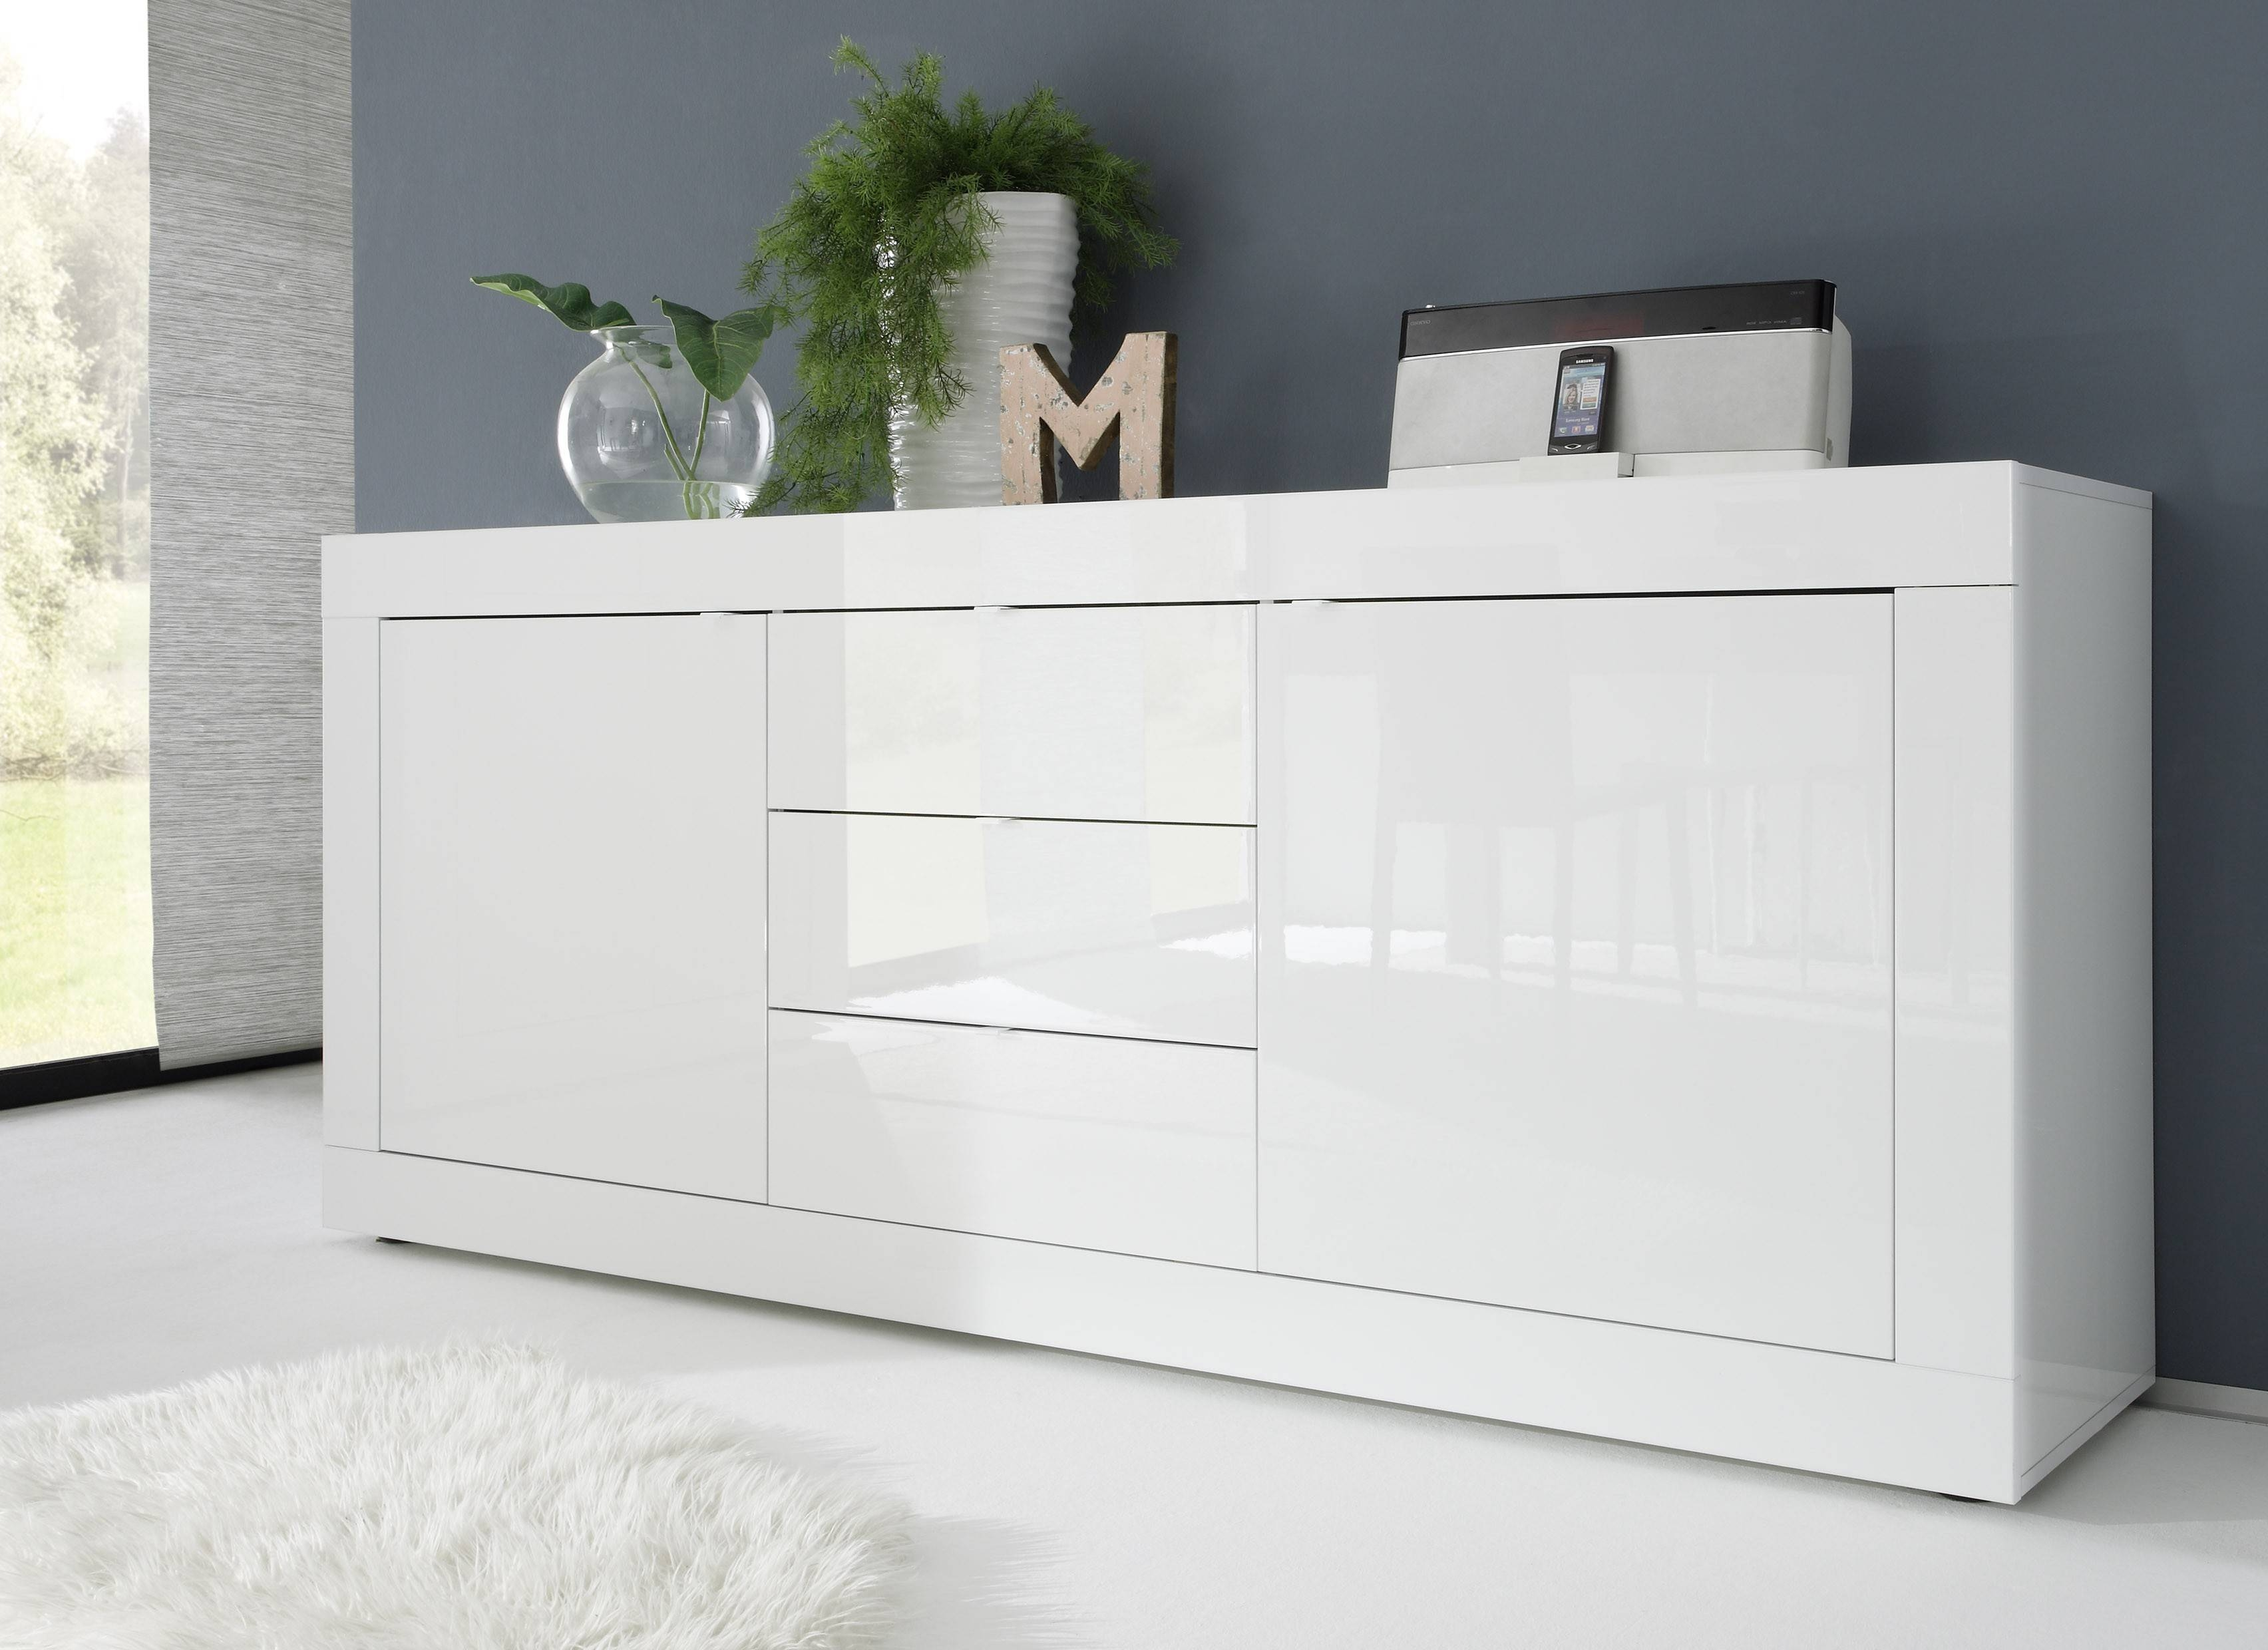 Dining Room Sideboard White (View 9 of 20)